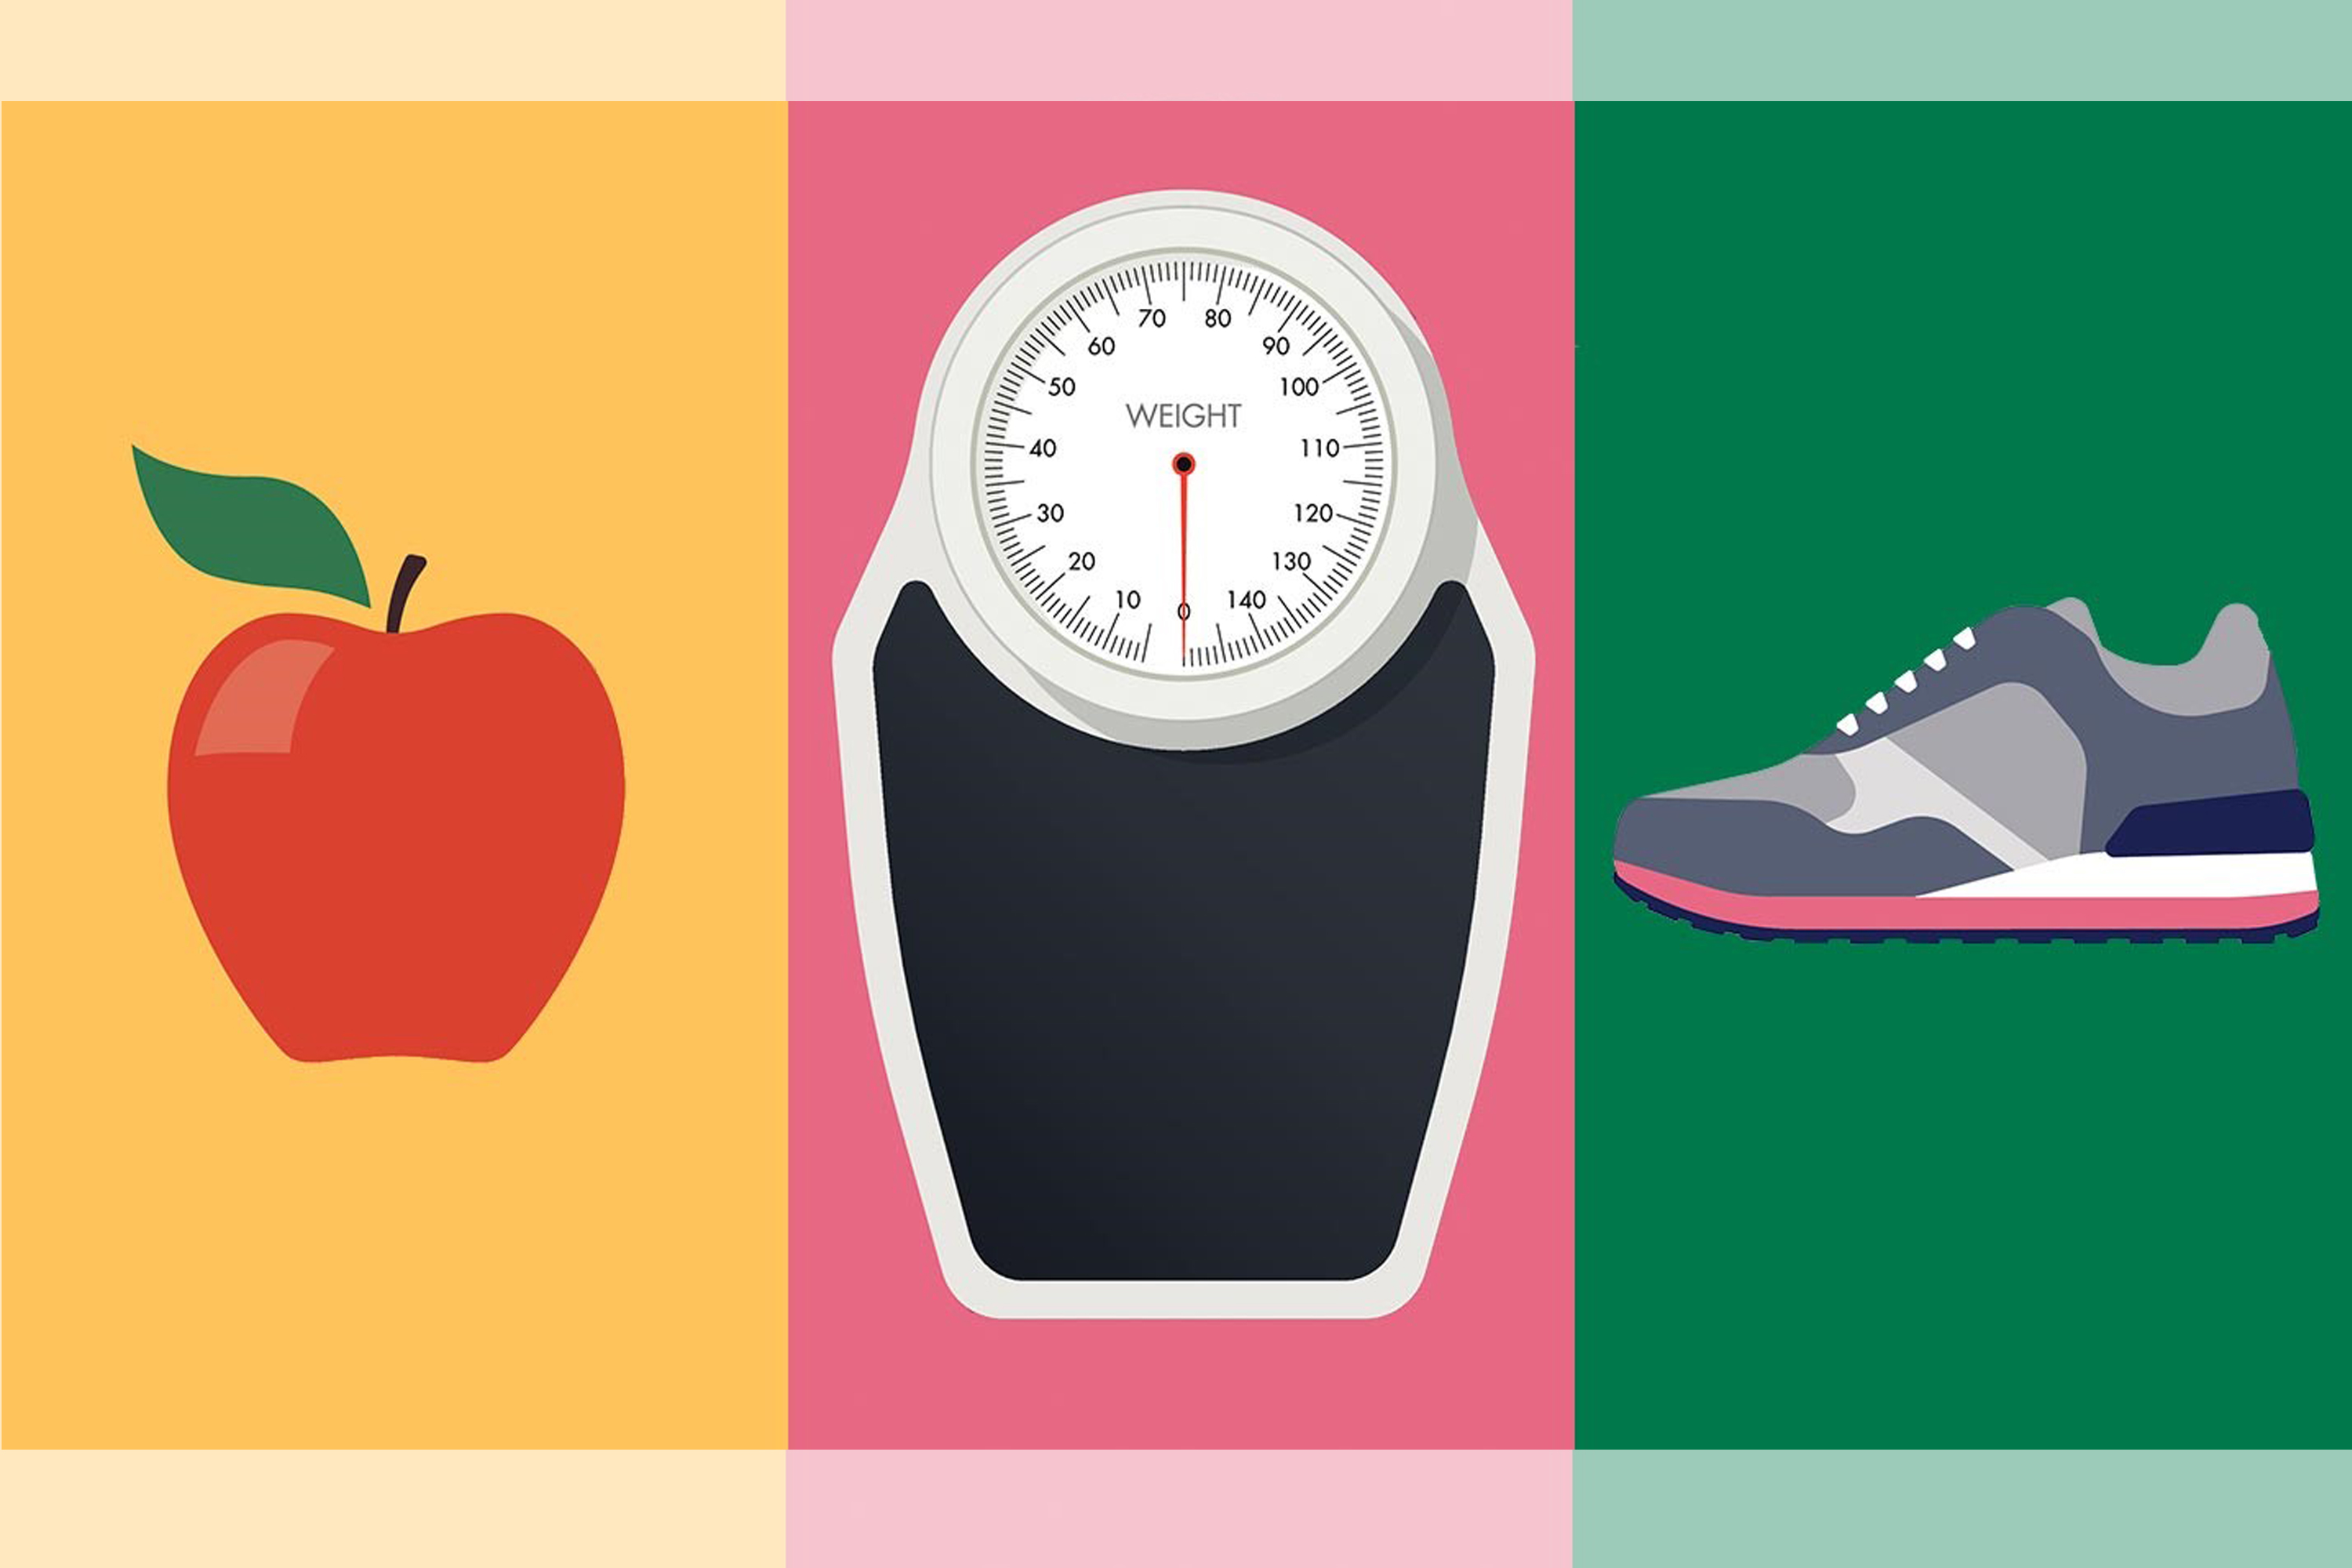 LOSE WEIGHT IN A WEEK!